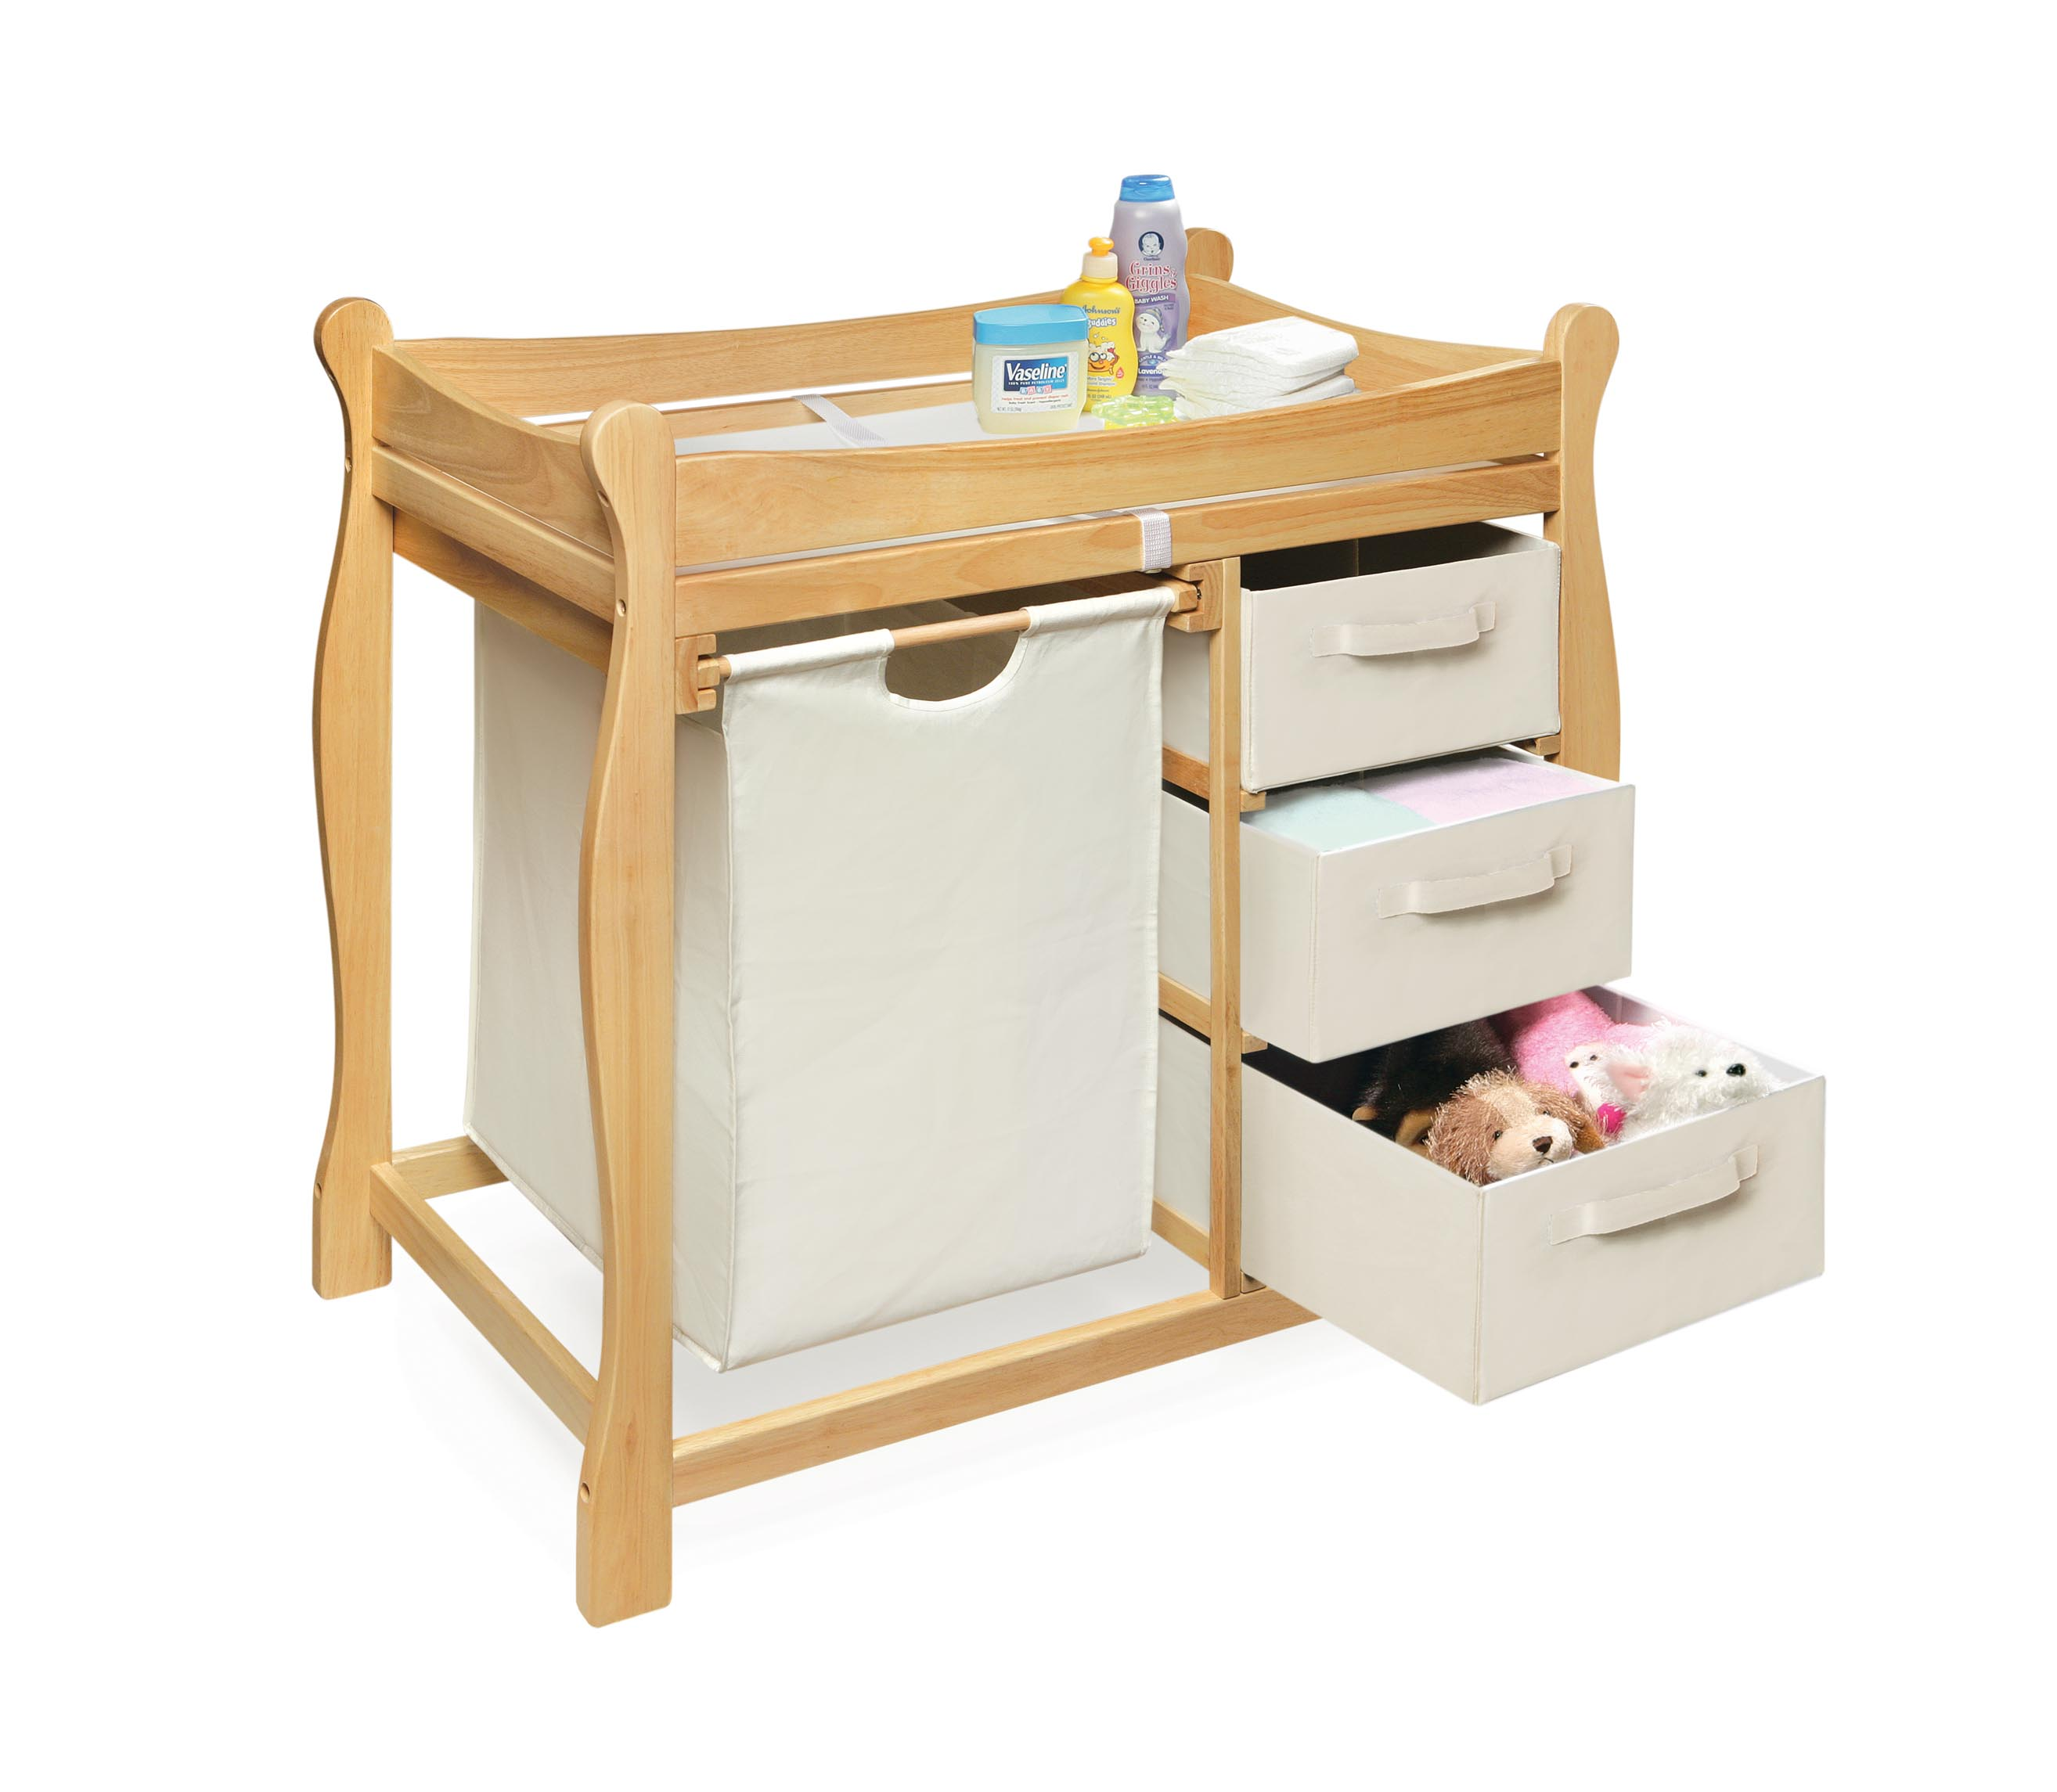 Charmant Shop Natural Changing Table With Hamper And Three Baskets   Free Shipping  Today   Overstock.com   3821189